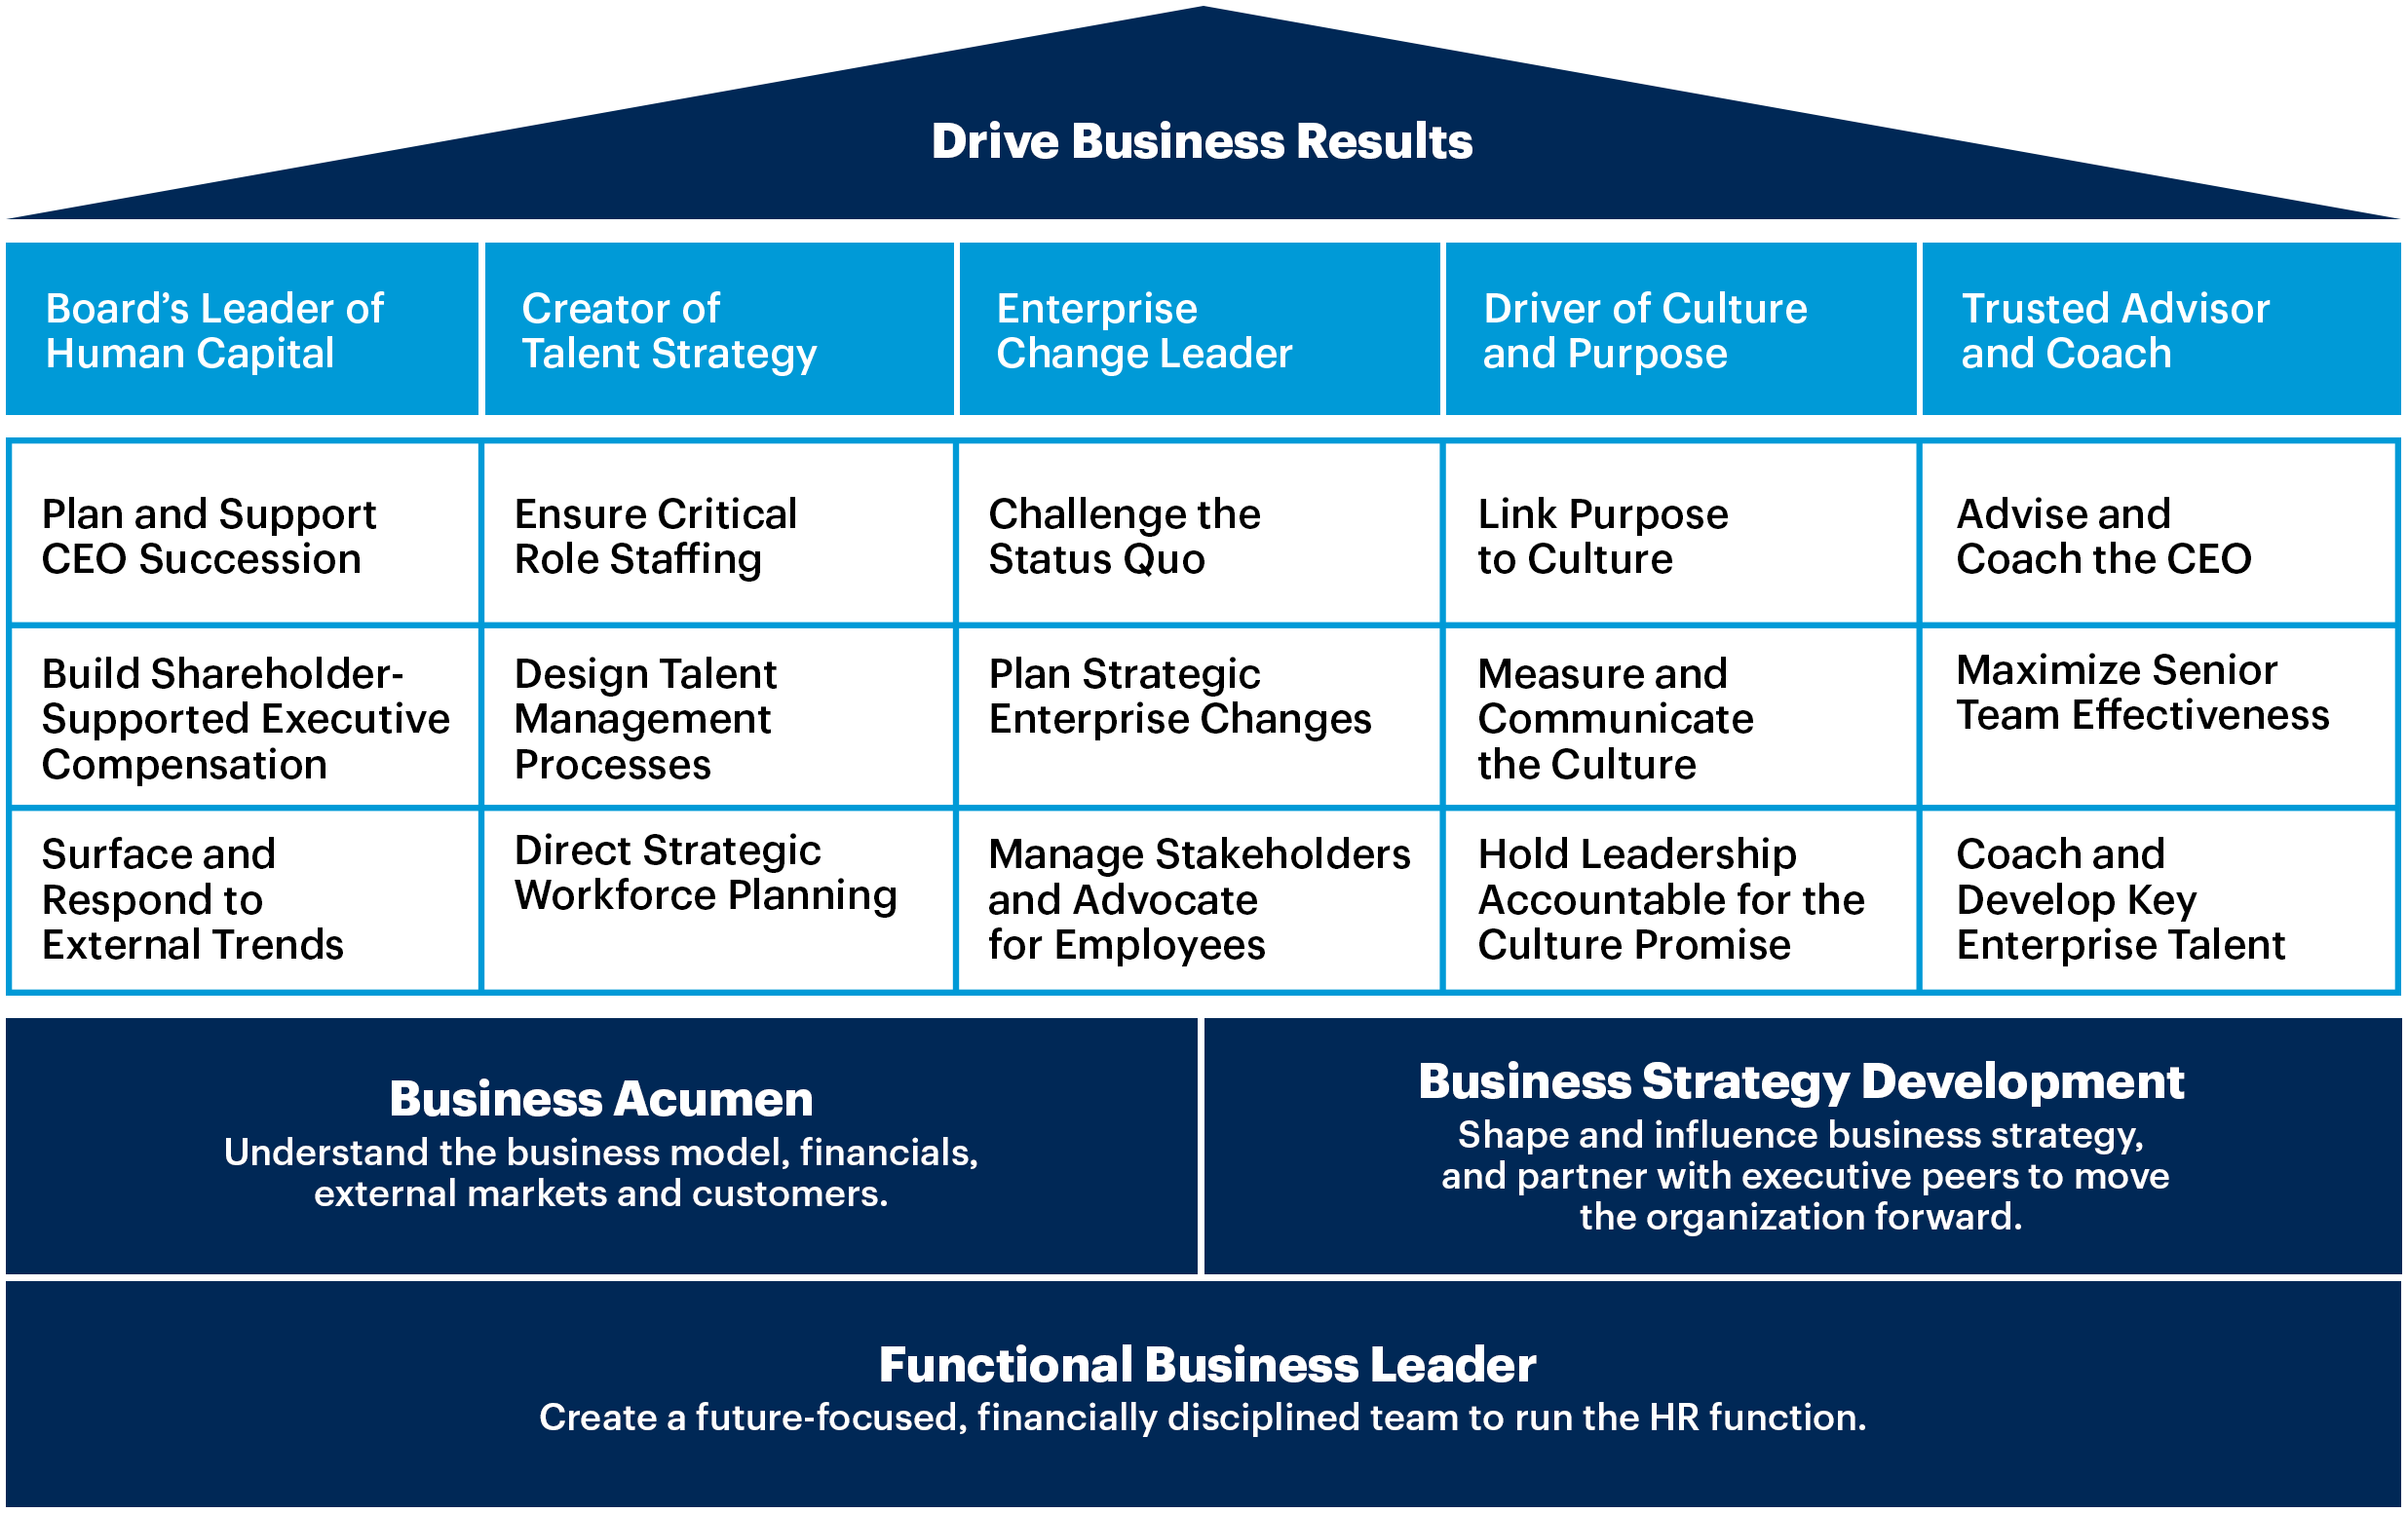 Chart showing how business leader's can drive business results.